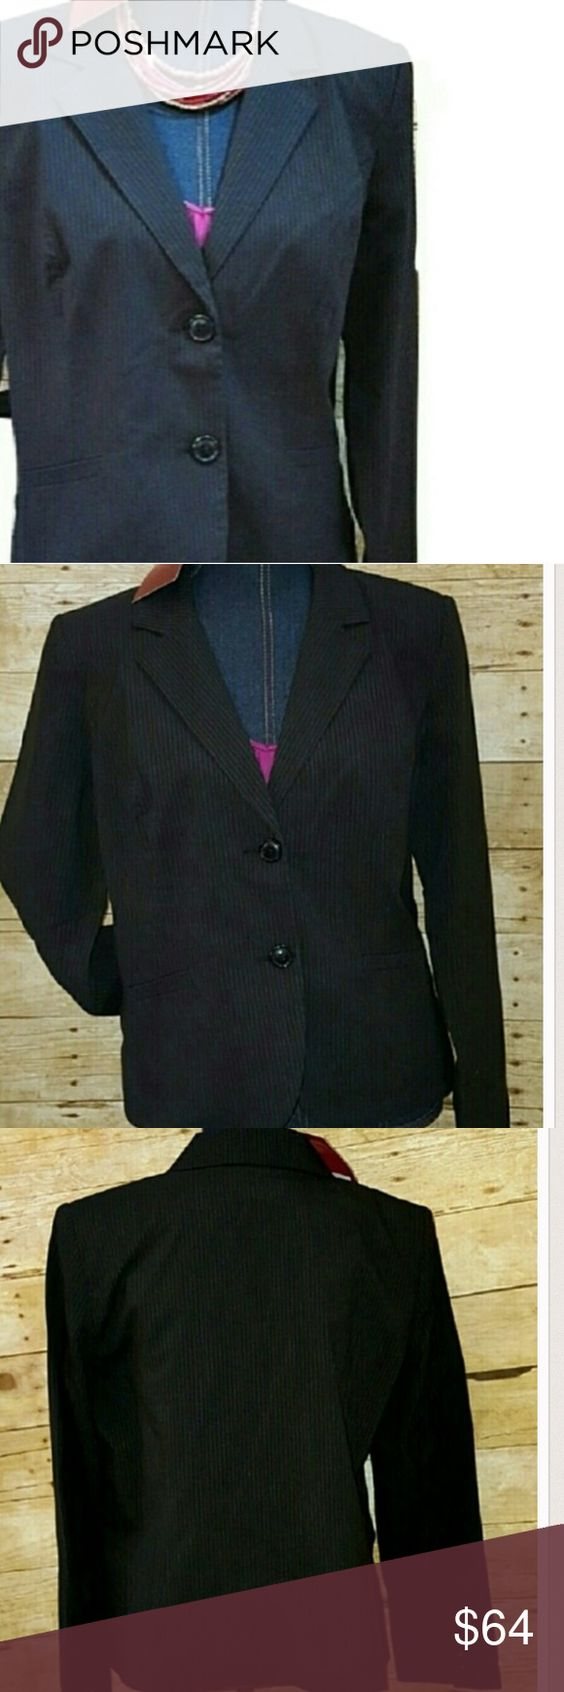 """NWT 16 Black Pin Stripe Button Blazer Jacket Plus Gorgeous and slimming 212 Collection black pin-stripe career or casual two-button blazer/ suit jacket. Gorgeous and perfect for fall. Works beautifully with a variety of colors. Featuring a double button closure and slimming pin-stripes. NEW w tags/ NWT. Shell: 71% polyester 27% rayon 2% spandex. Fully lined (poly). Listing is for jacket.Purchased at Kohls. Approximate flat measurements: bust 22"""" length 24"""". Thanks for understanding this is…"""